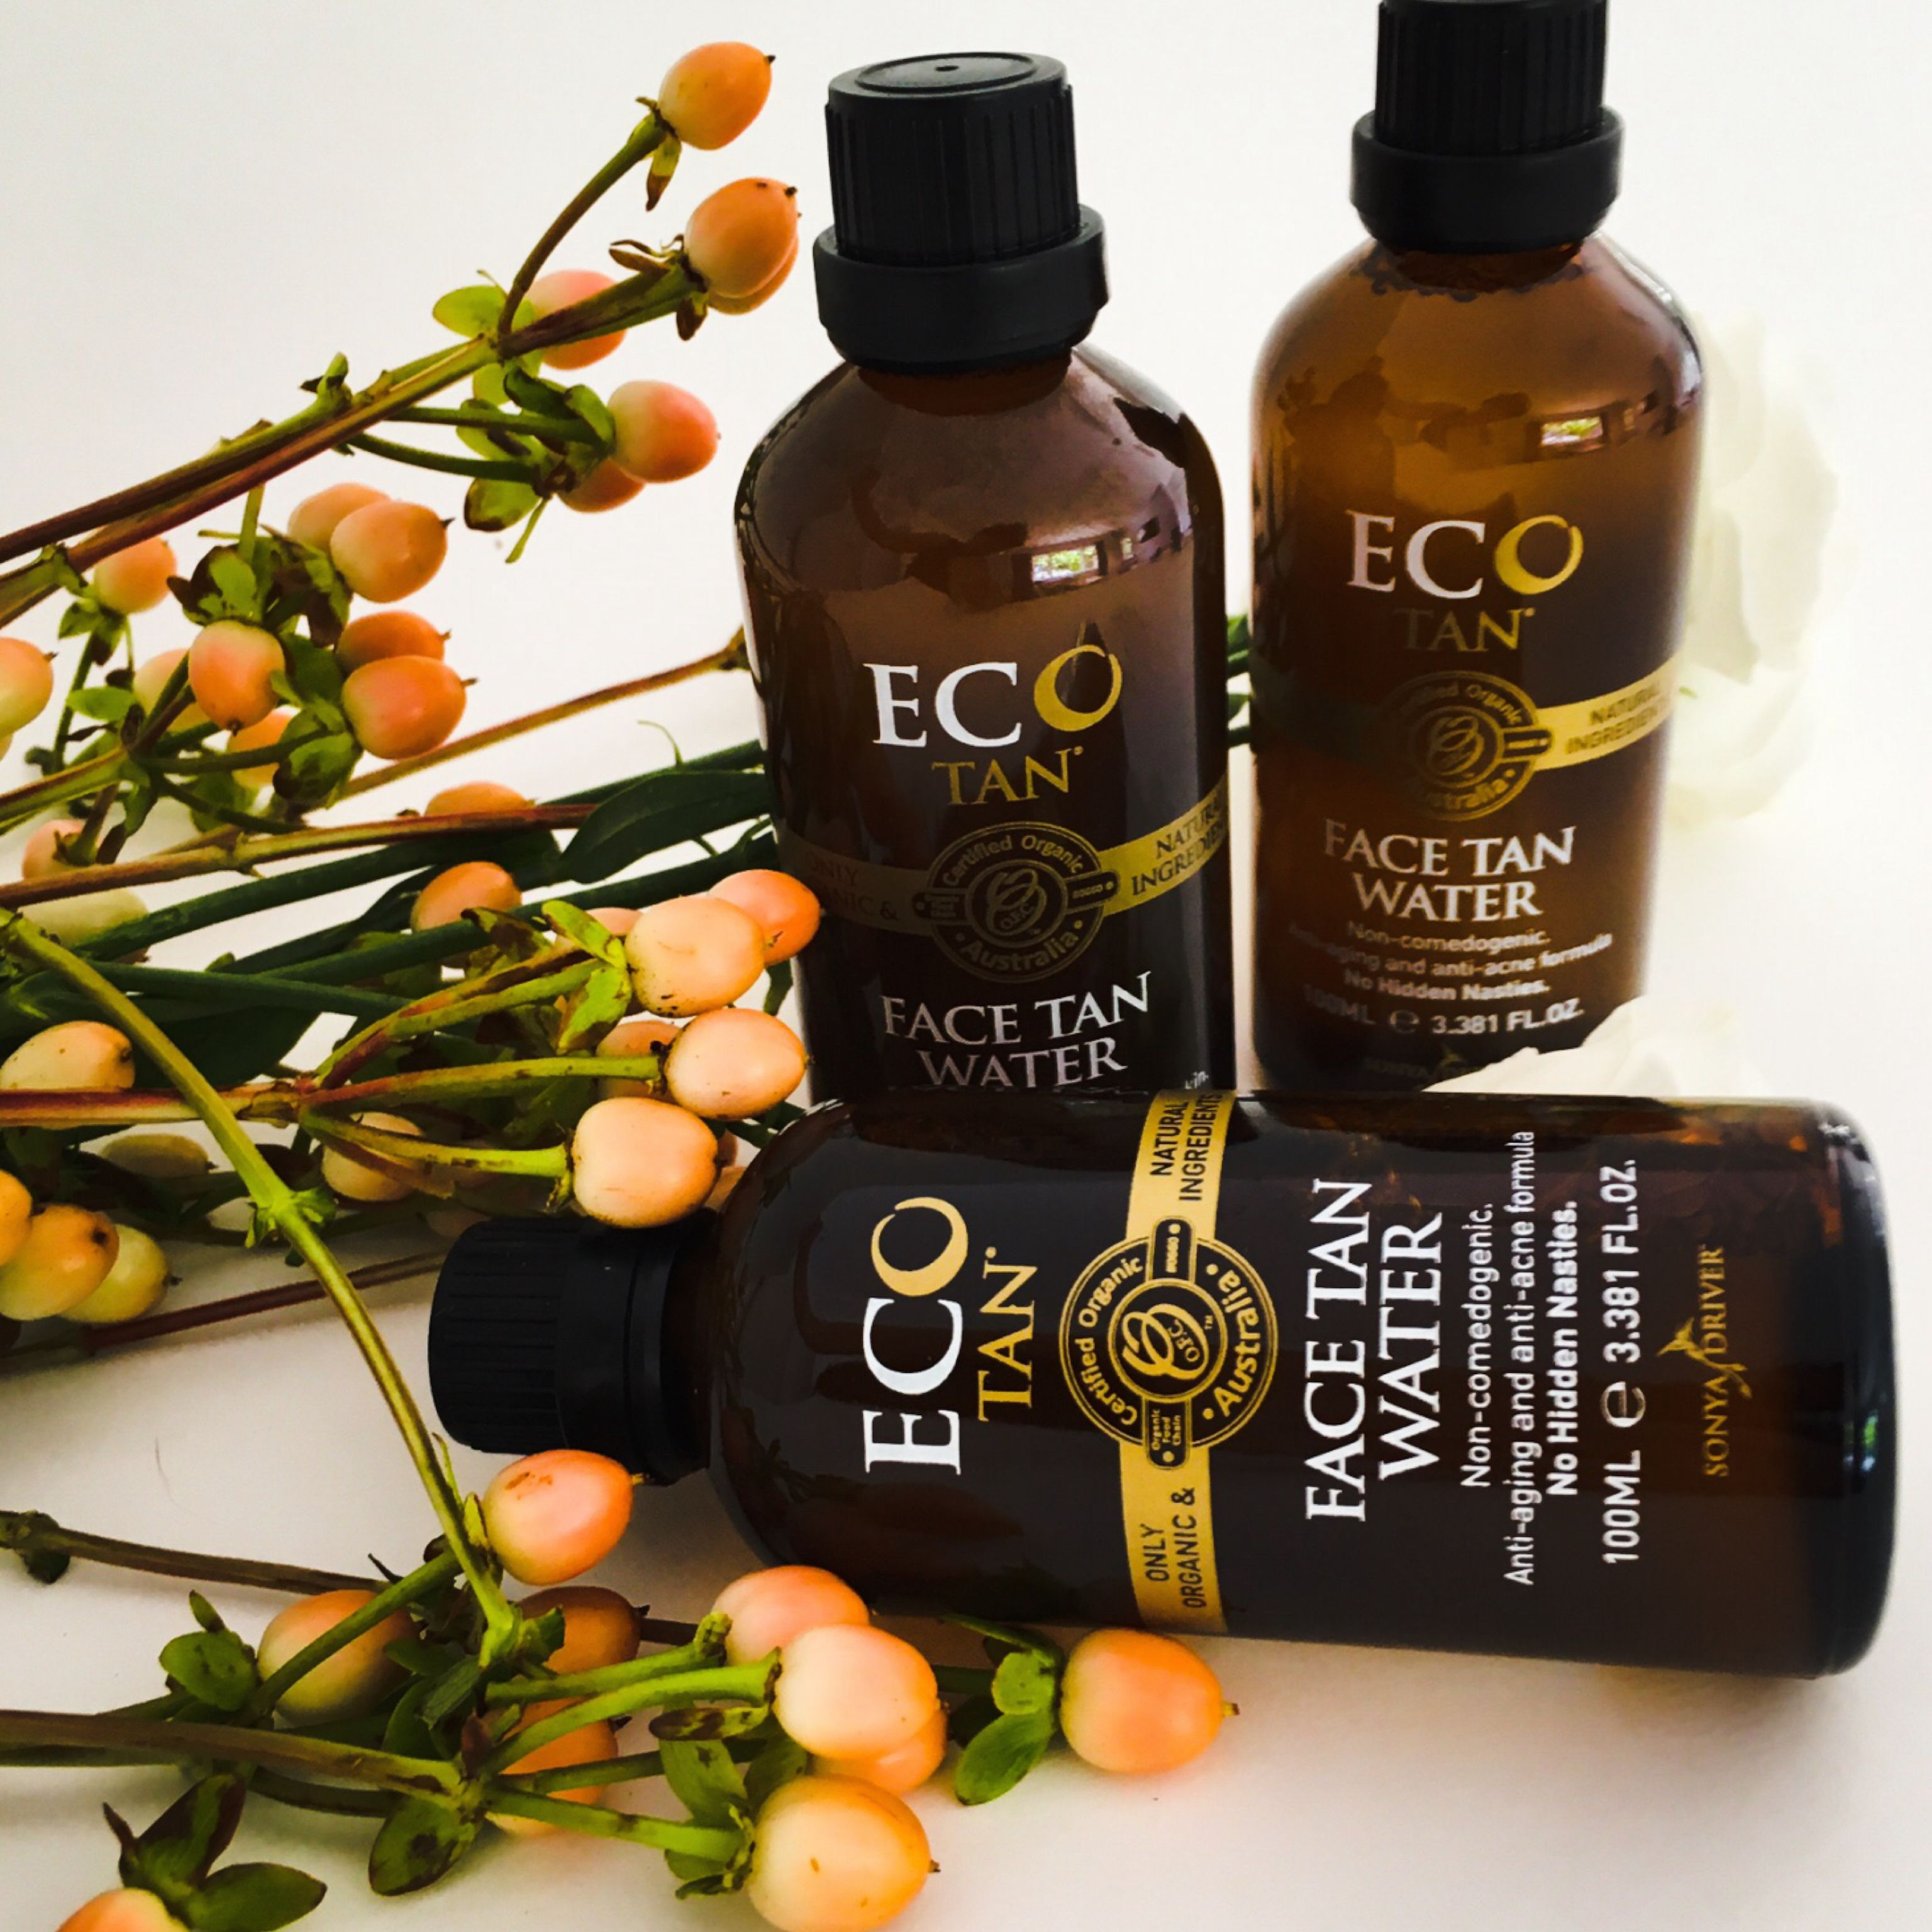 FACE TAN WATER = Your new FAVOURITE product! The ECO TAN